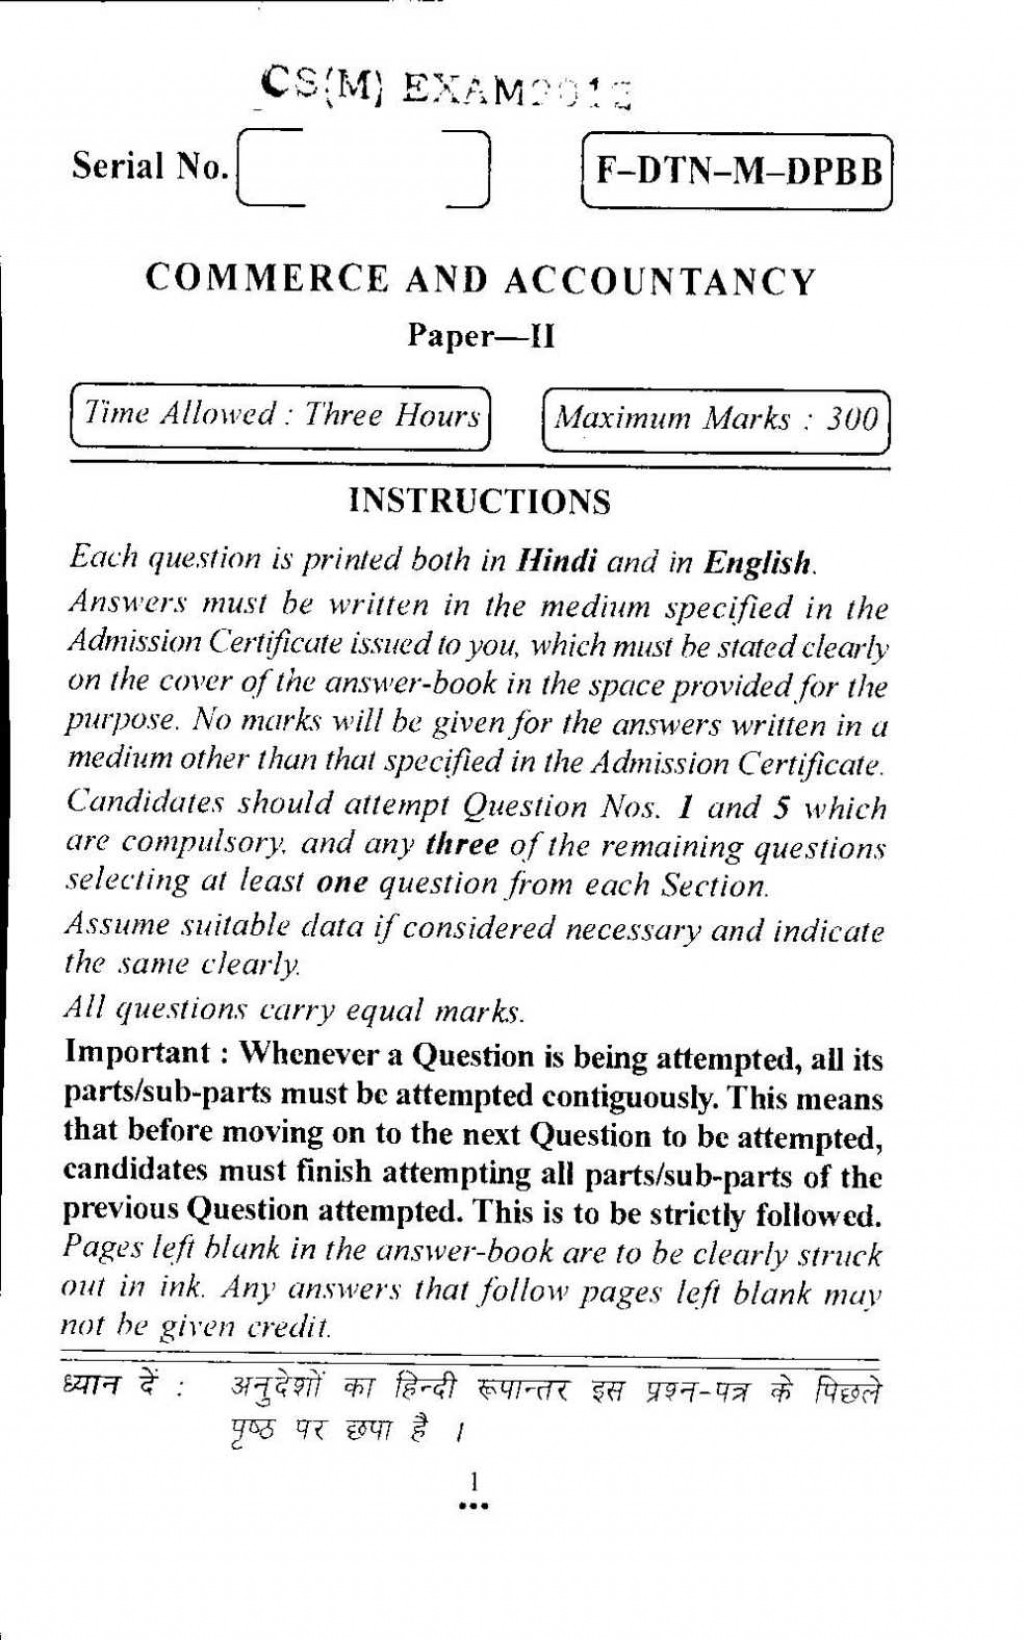 011 Civil Services Examination Commerce And Accountancy Paper Ii Previous Years Que Essay Example Marvelous Racism Conclusion Ideas Hook Large